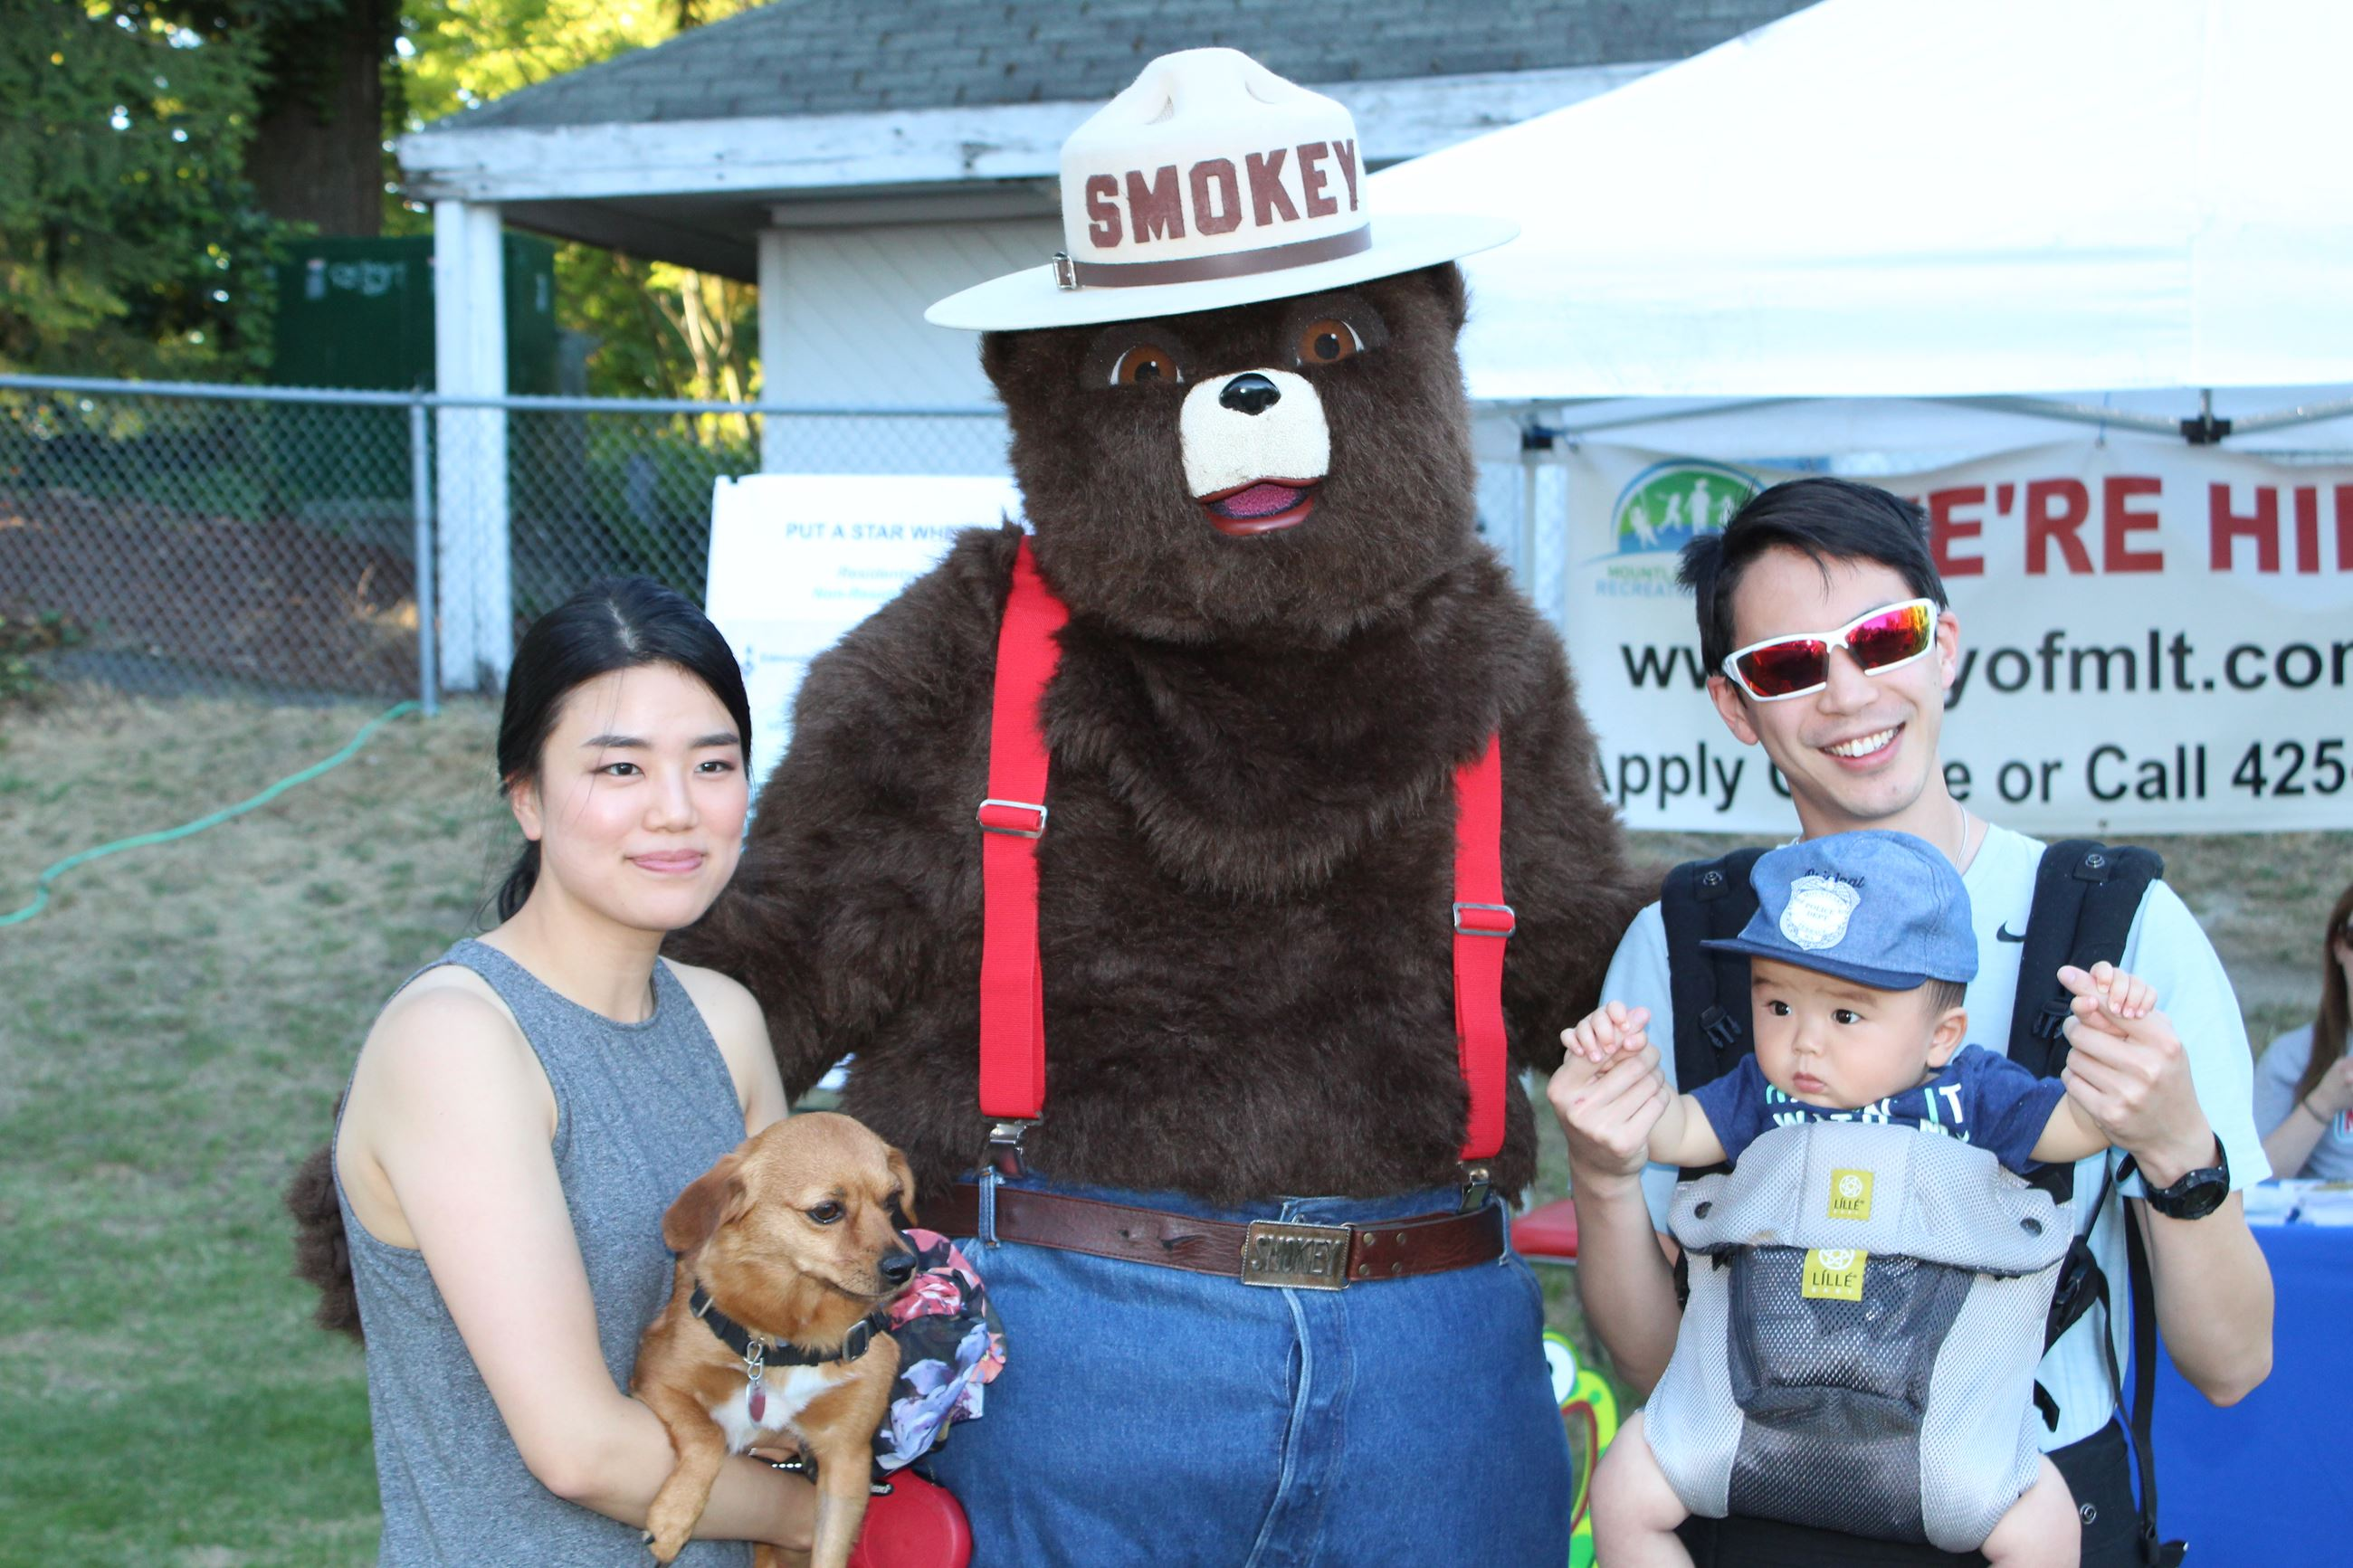 Smokey Bear with family at event